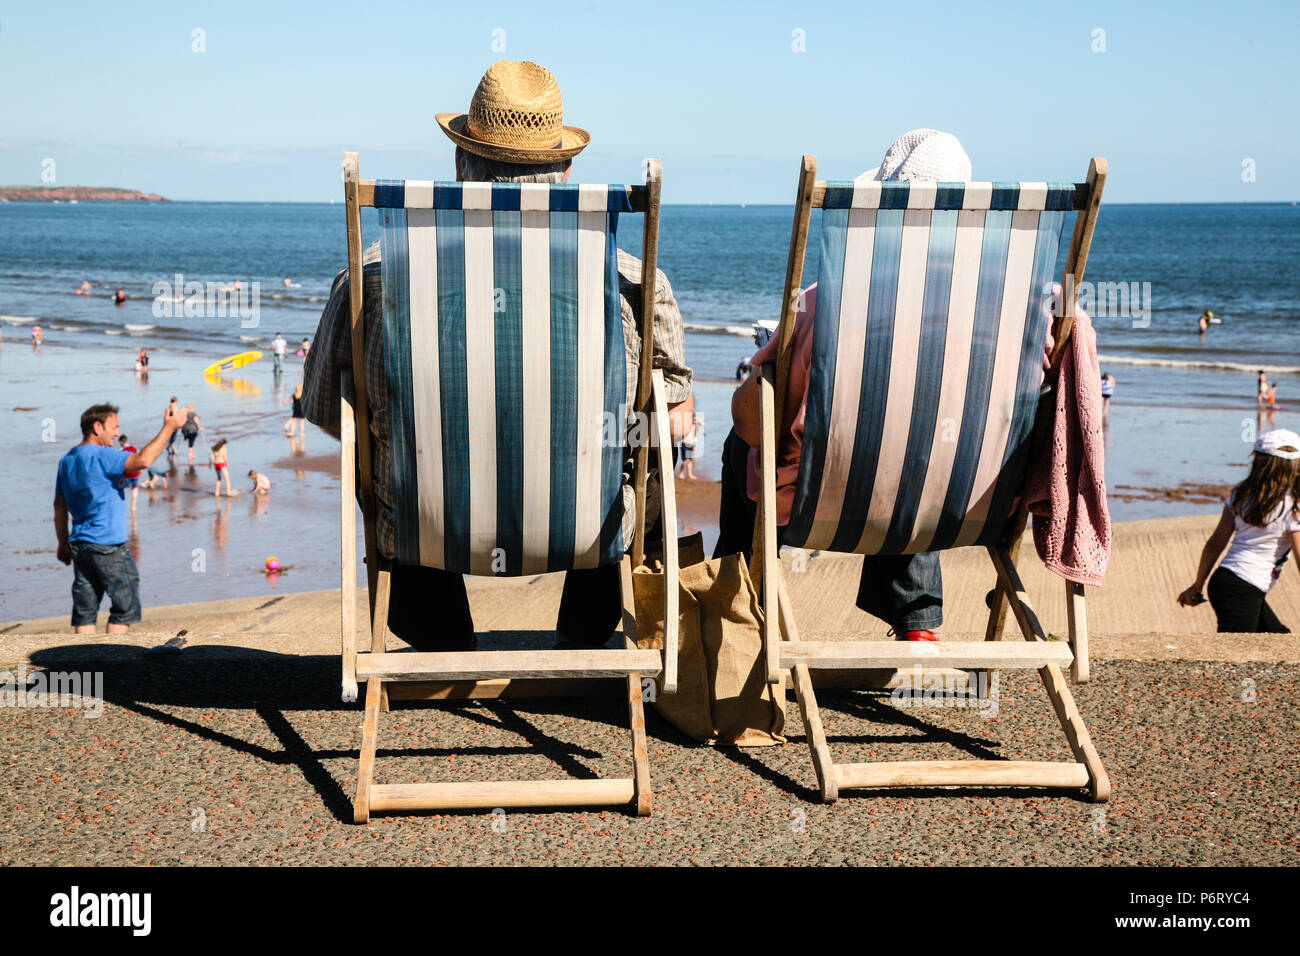 Older Hatted Couple enjoying the English Summer heatwave by the seaside in Traditional striped Deck chairs by the beach in Dawlish, England, Europe. Stock Photo